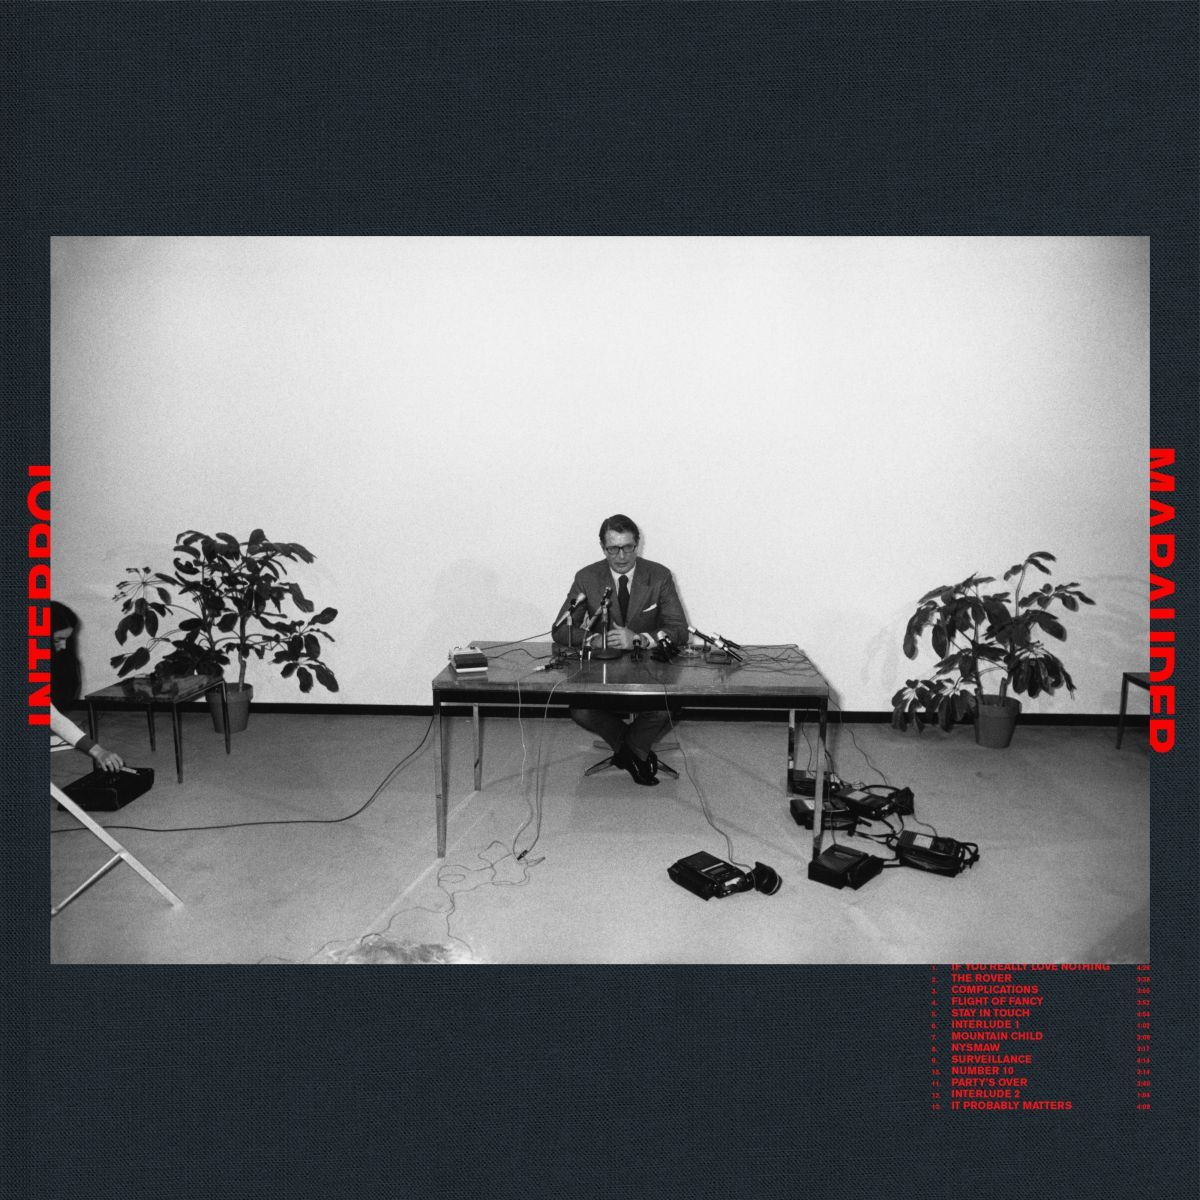 interpol-marauder-album-artwork